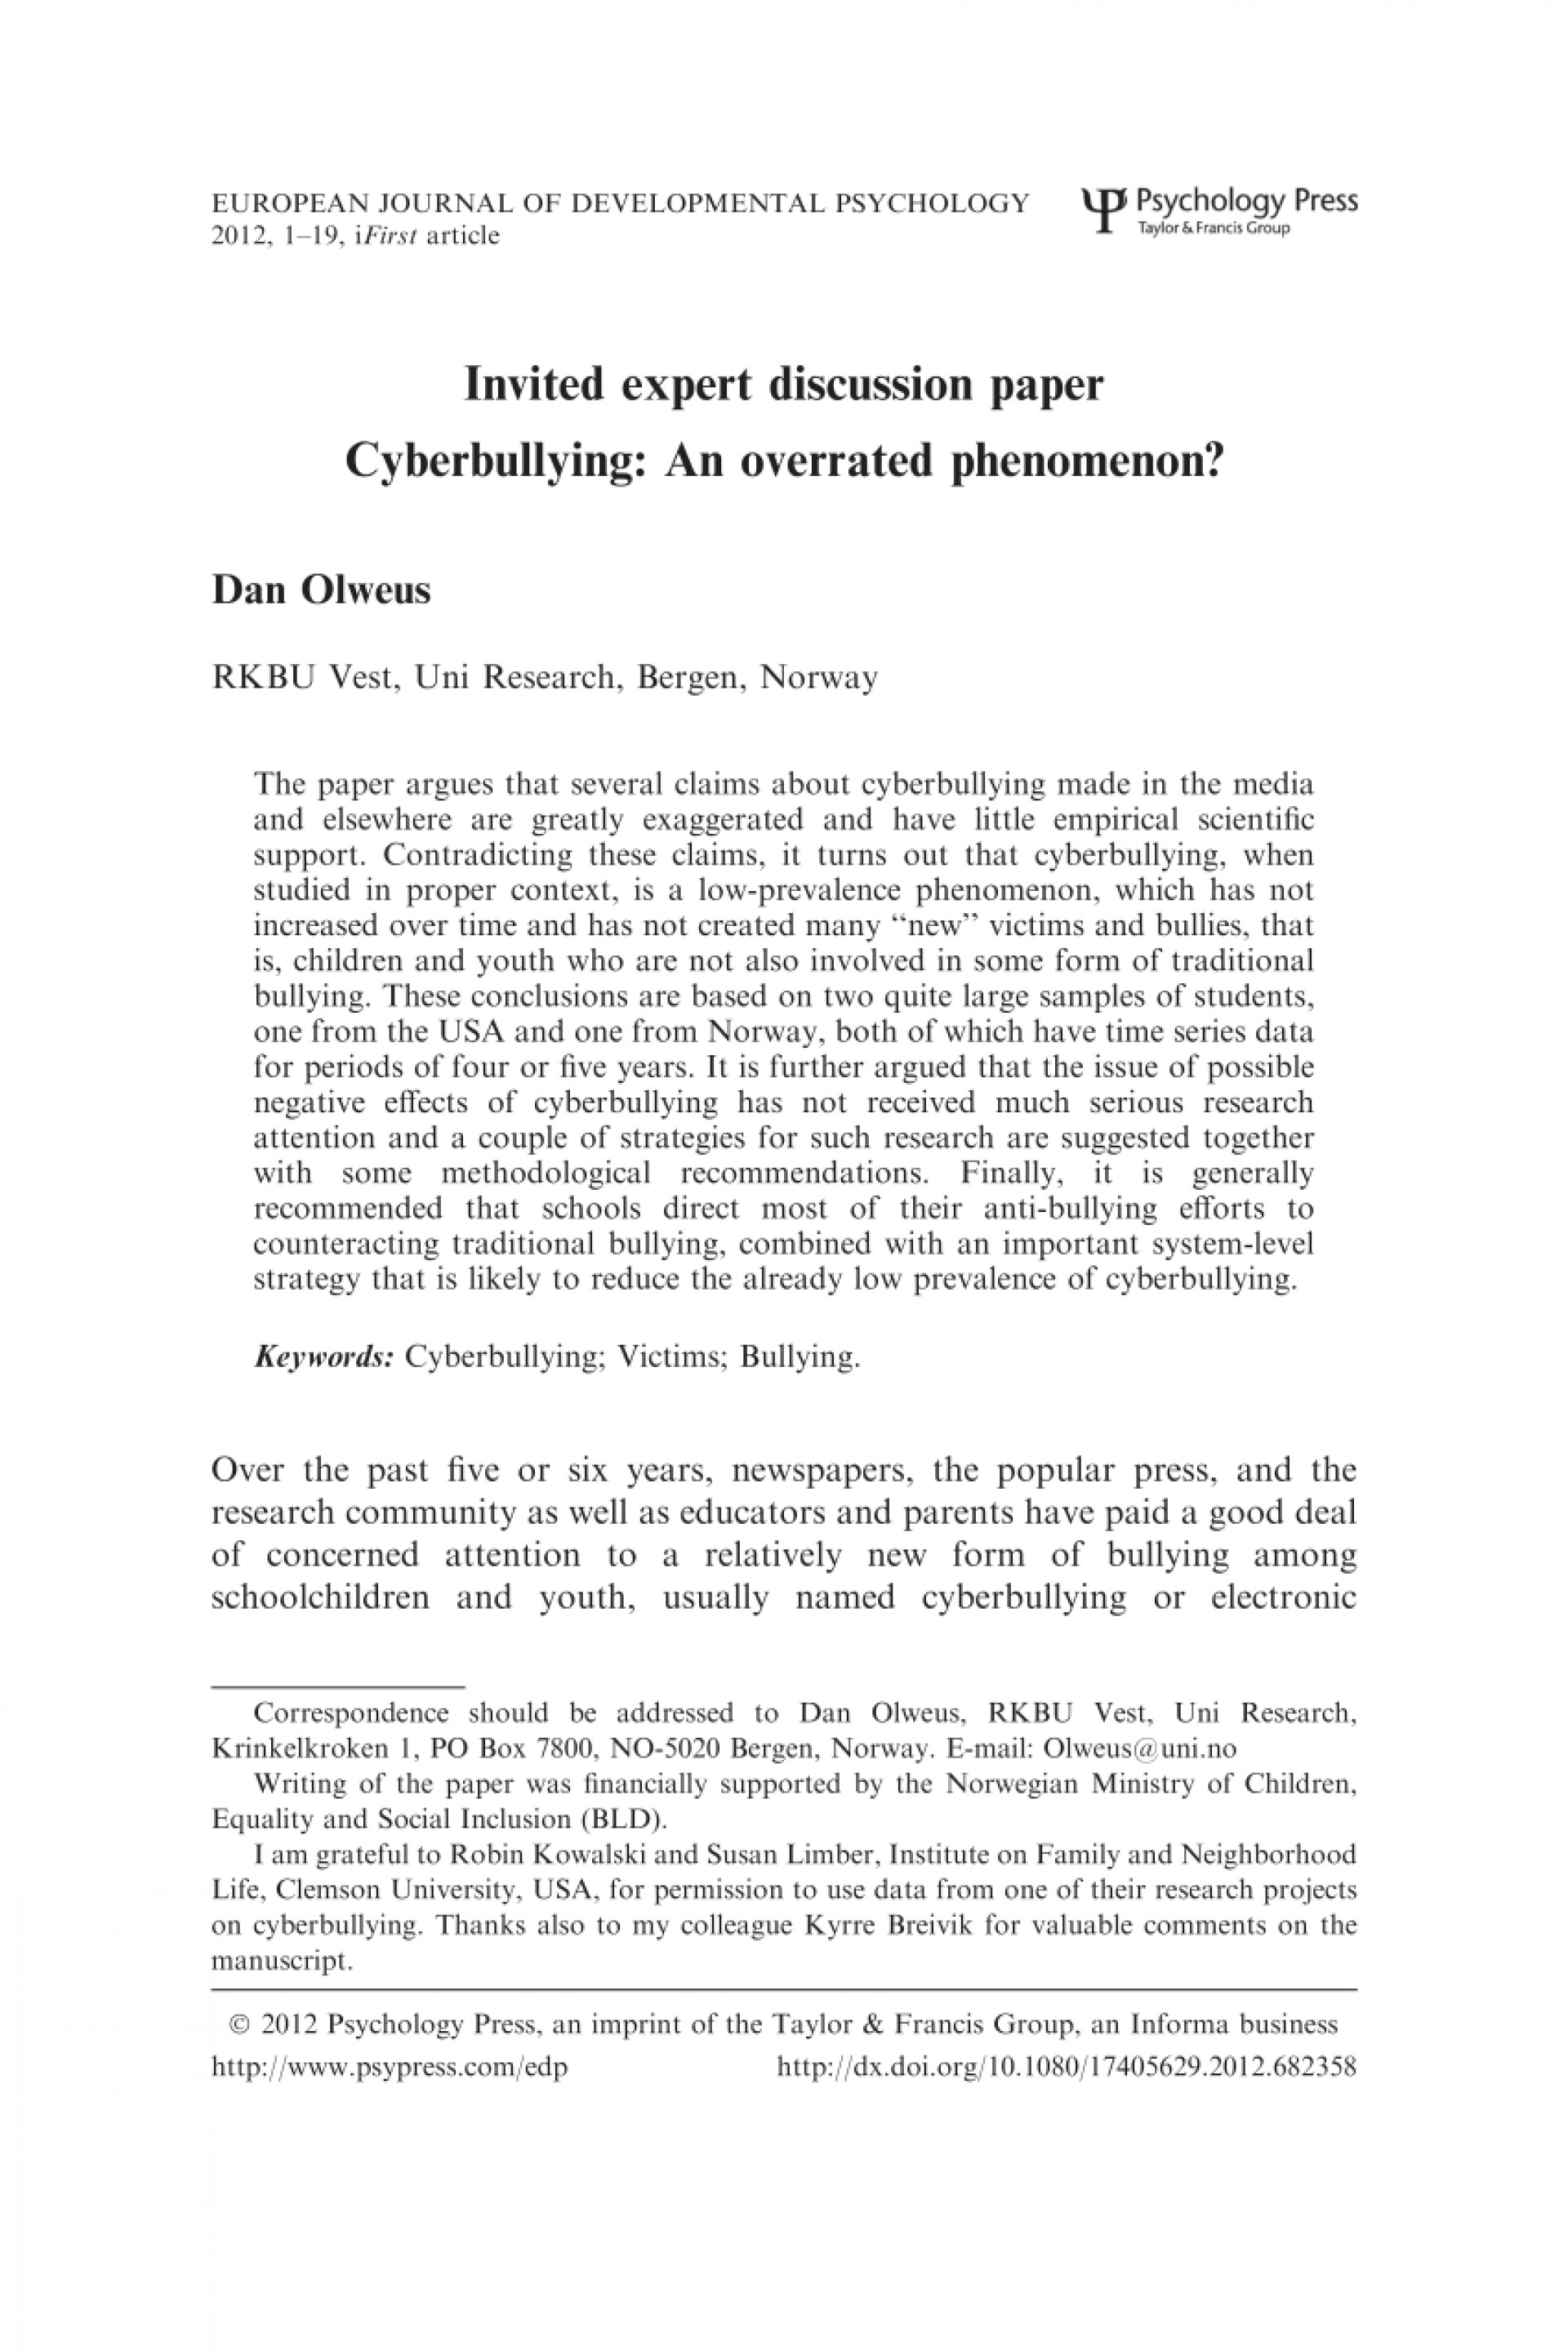 005 Cyberbullying Research Study Largepreview Exceptional Pdf 1920